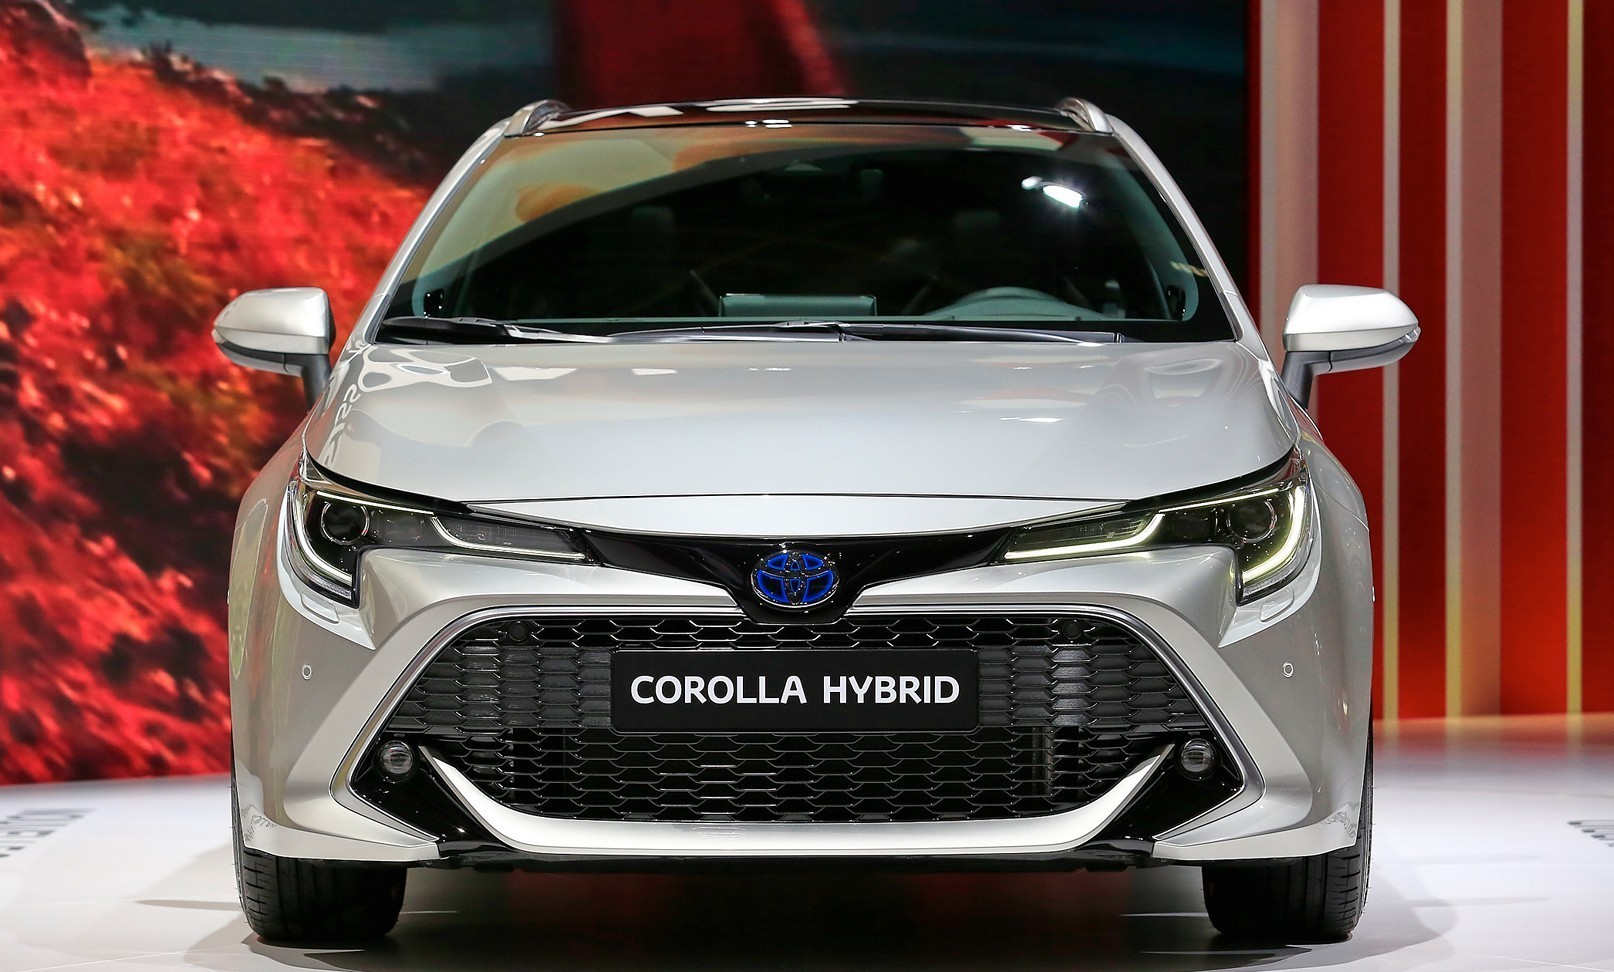 12th Generation Corolla Year 2020 Discussion Thread